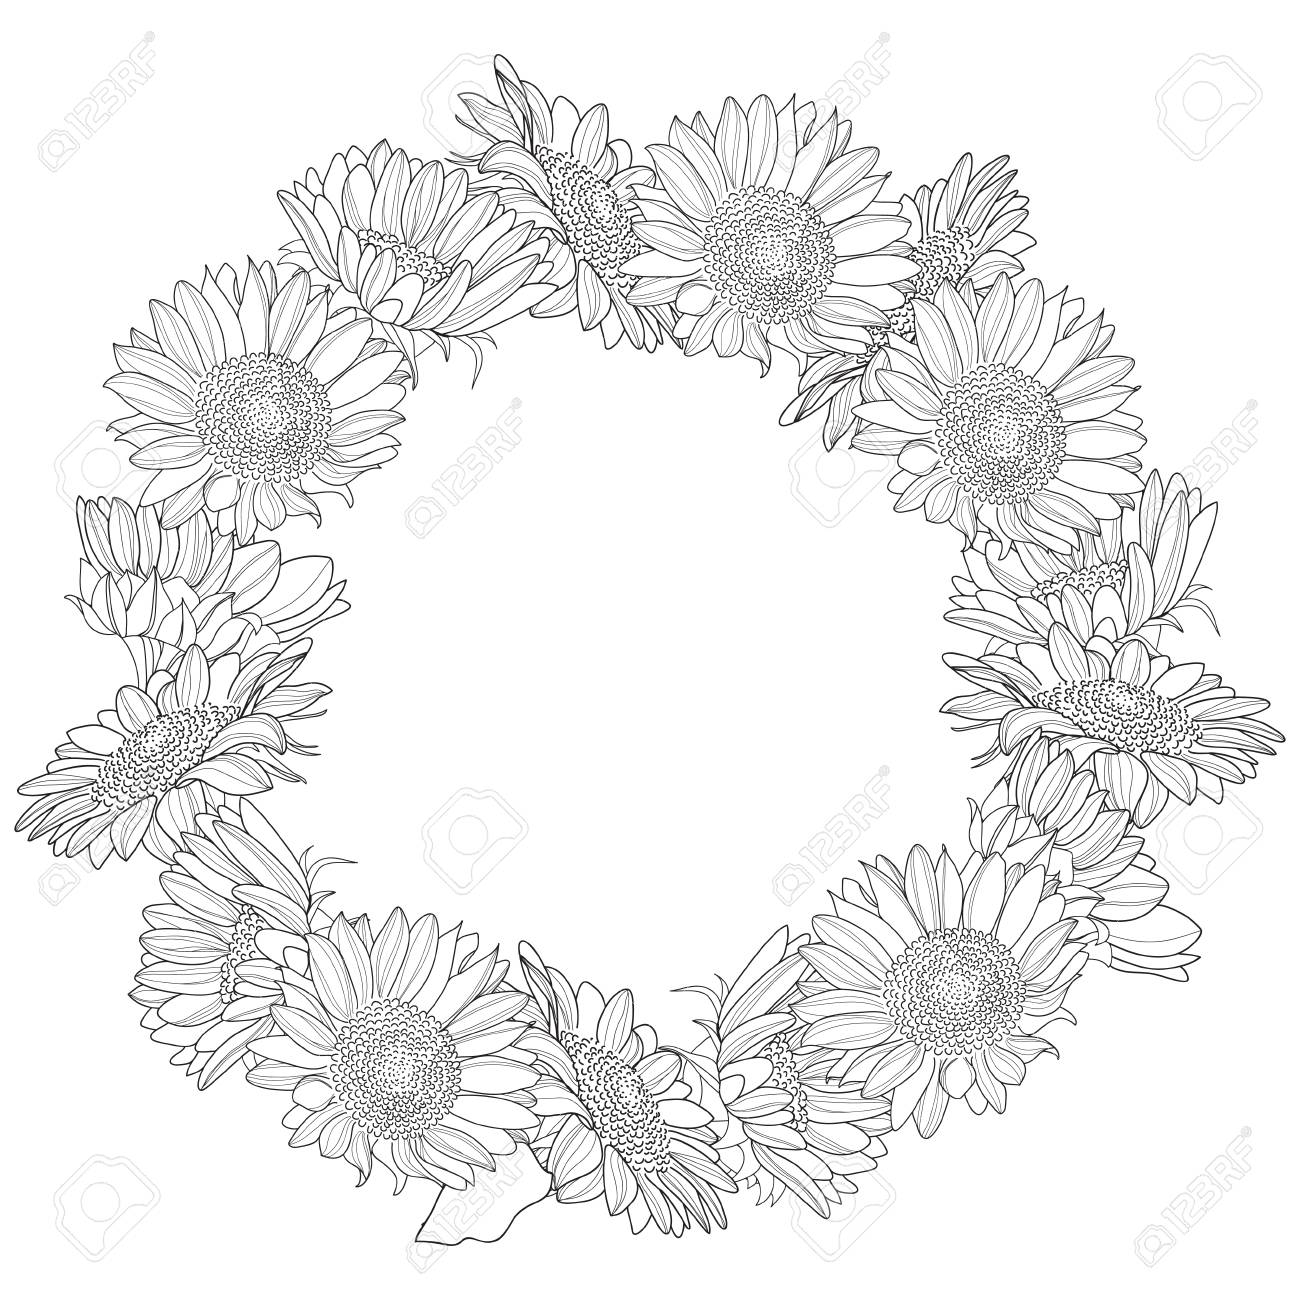 Wreath Made Of Sunflowers Royalty Free Cliparts Vectors And Stock Illustration Image 48721110